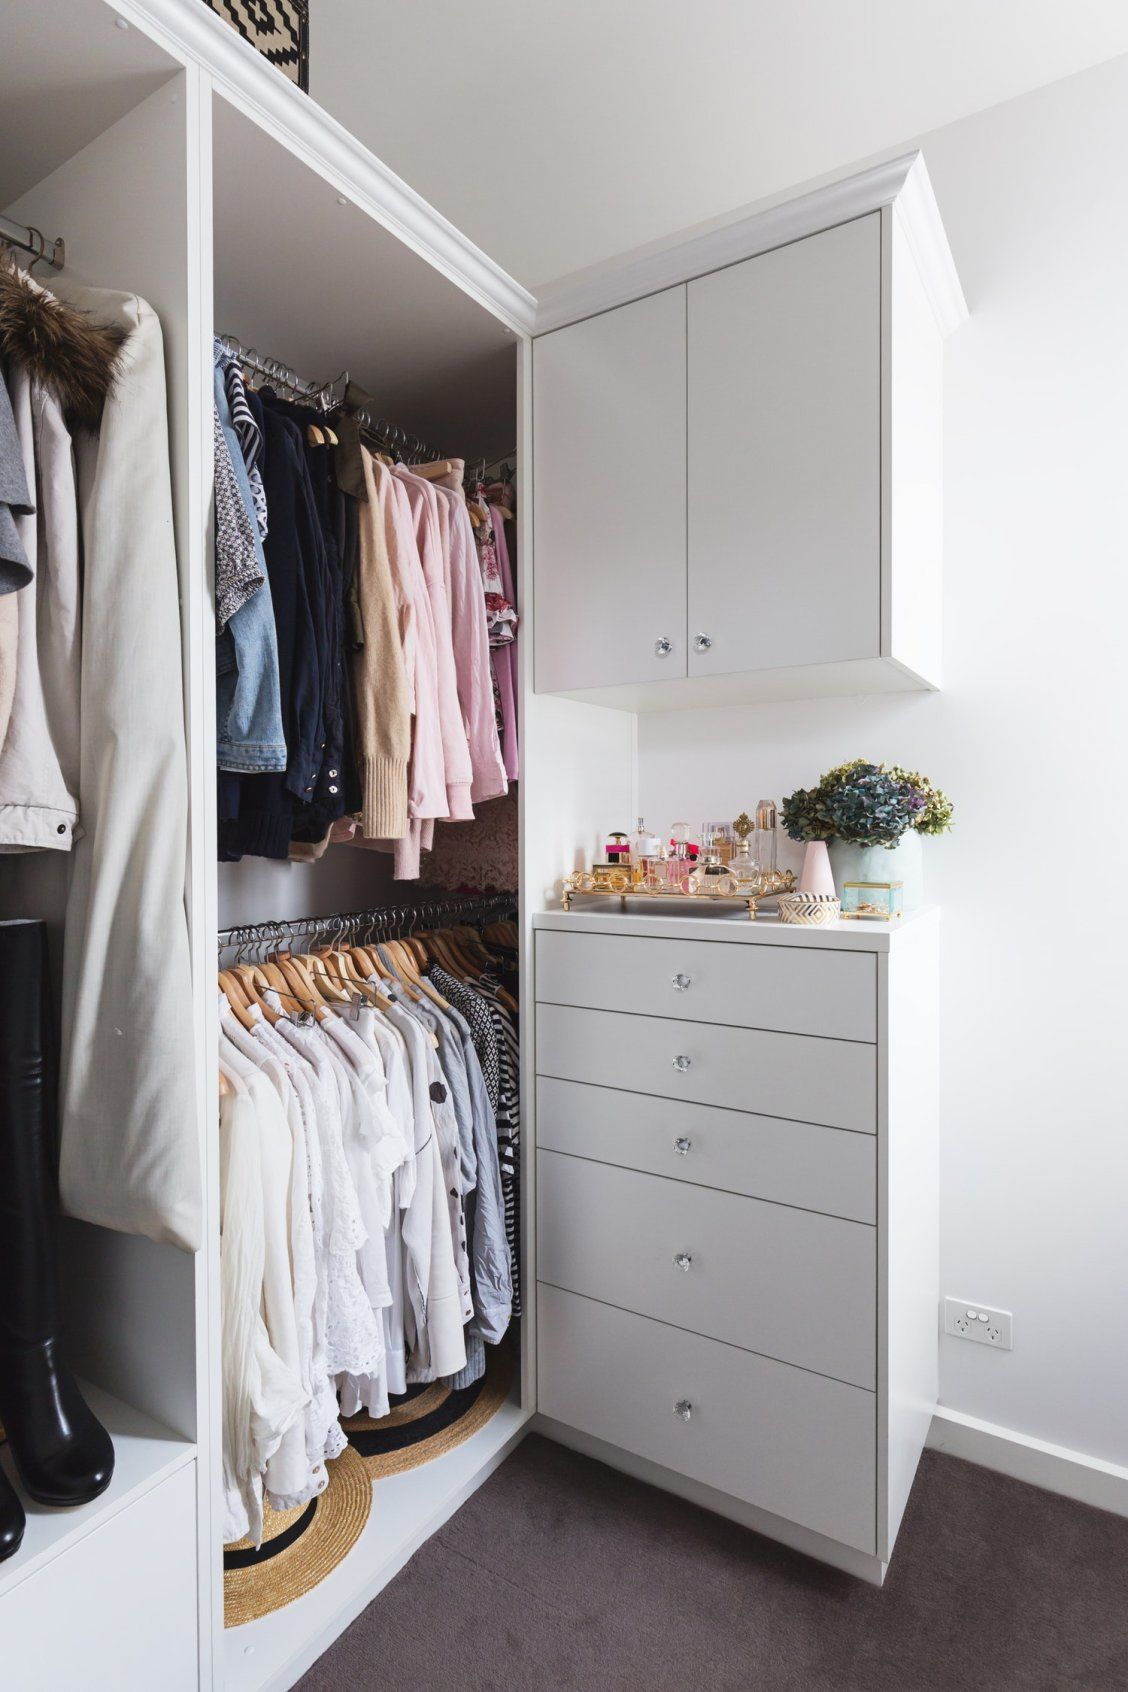 5 Ideas To Make The Most Of Your Closet Whether You Ve Got A Walk In Wardrobe An Open Clothing Rail Bedroom Or Something Between